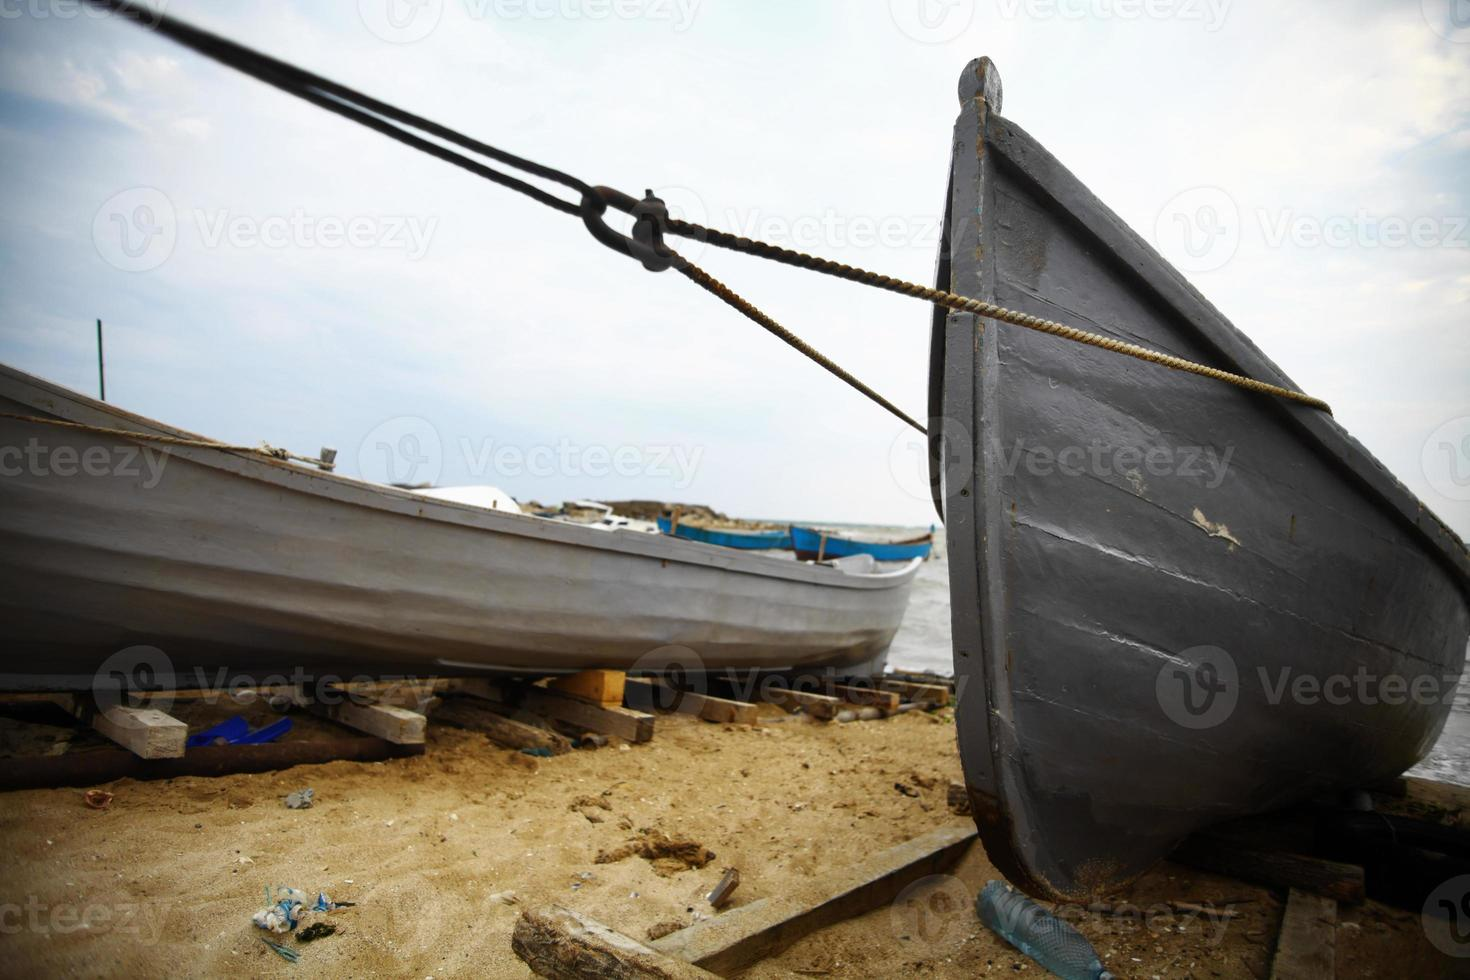 Boats by the sea photo